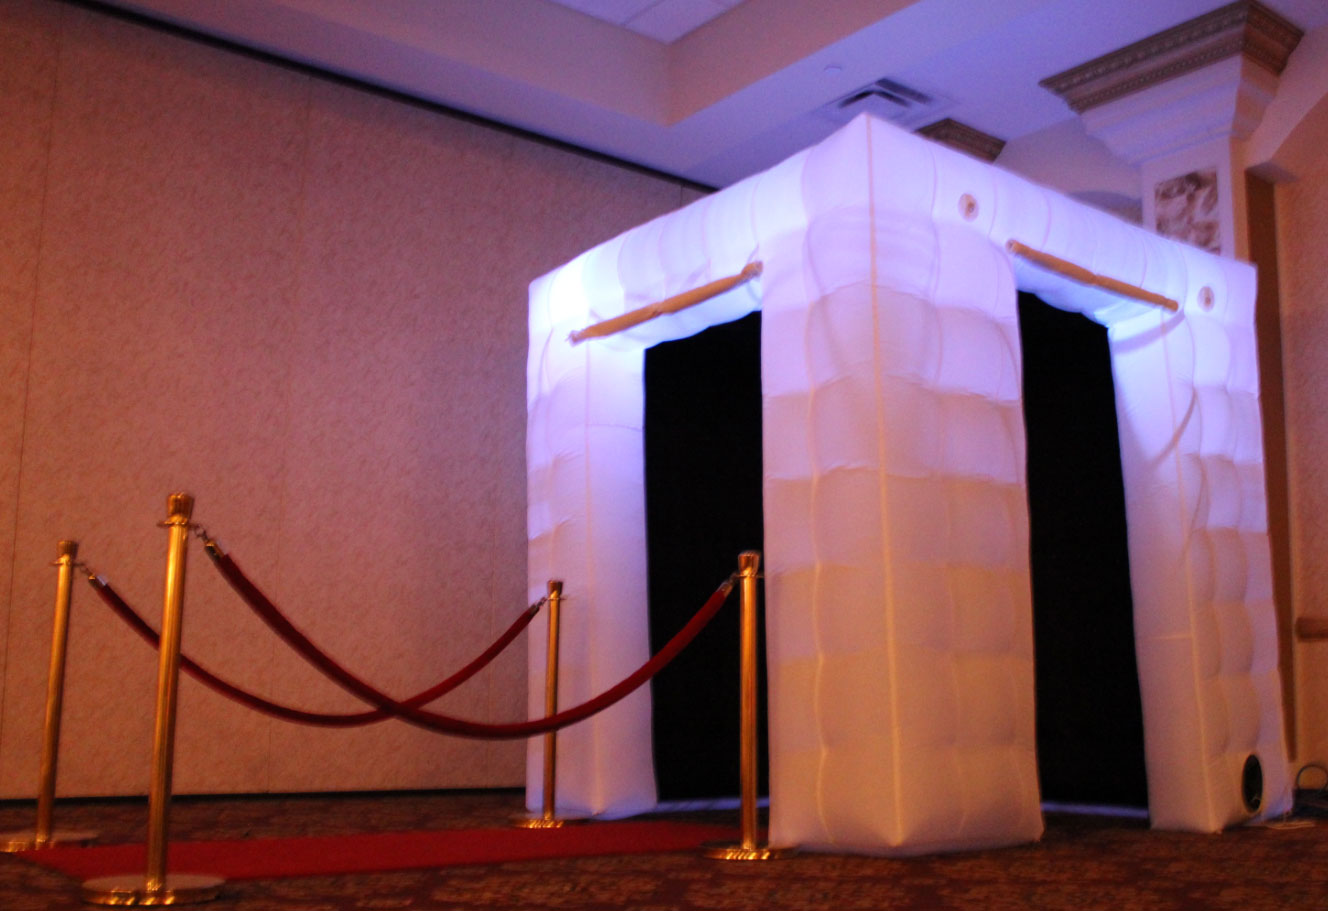 The Photo Cube Booth